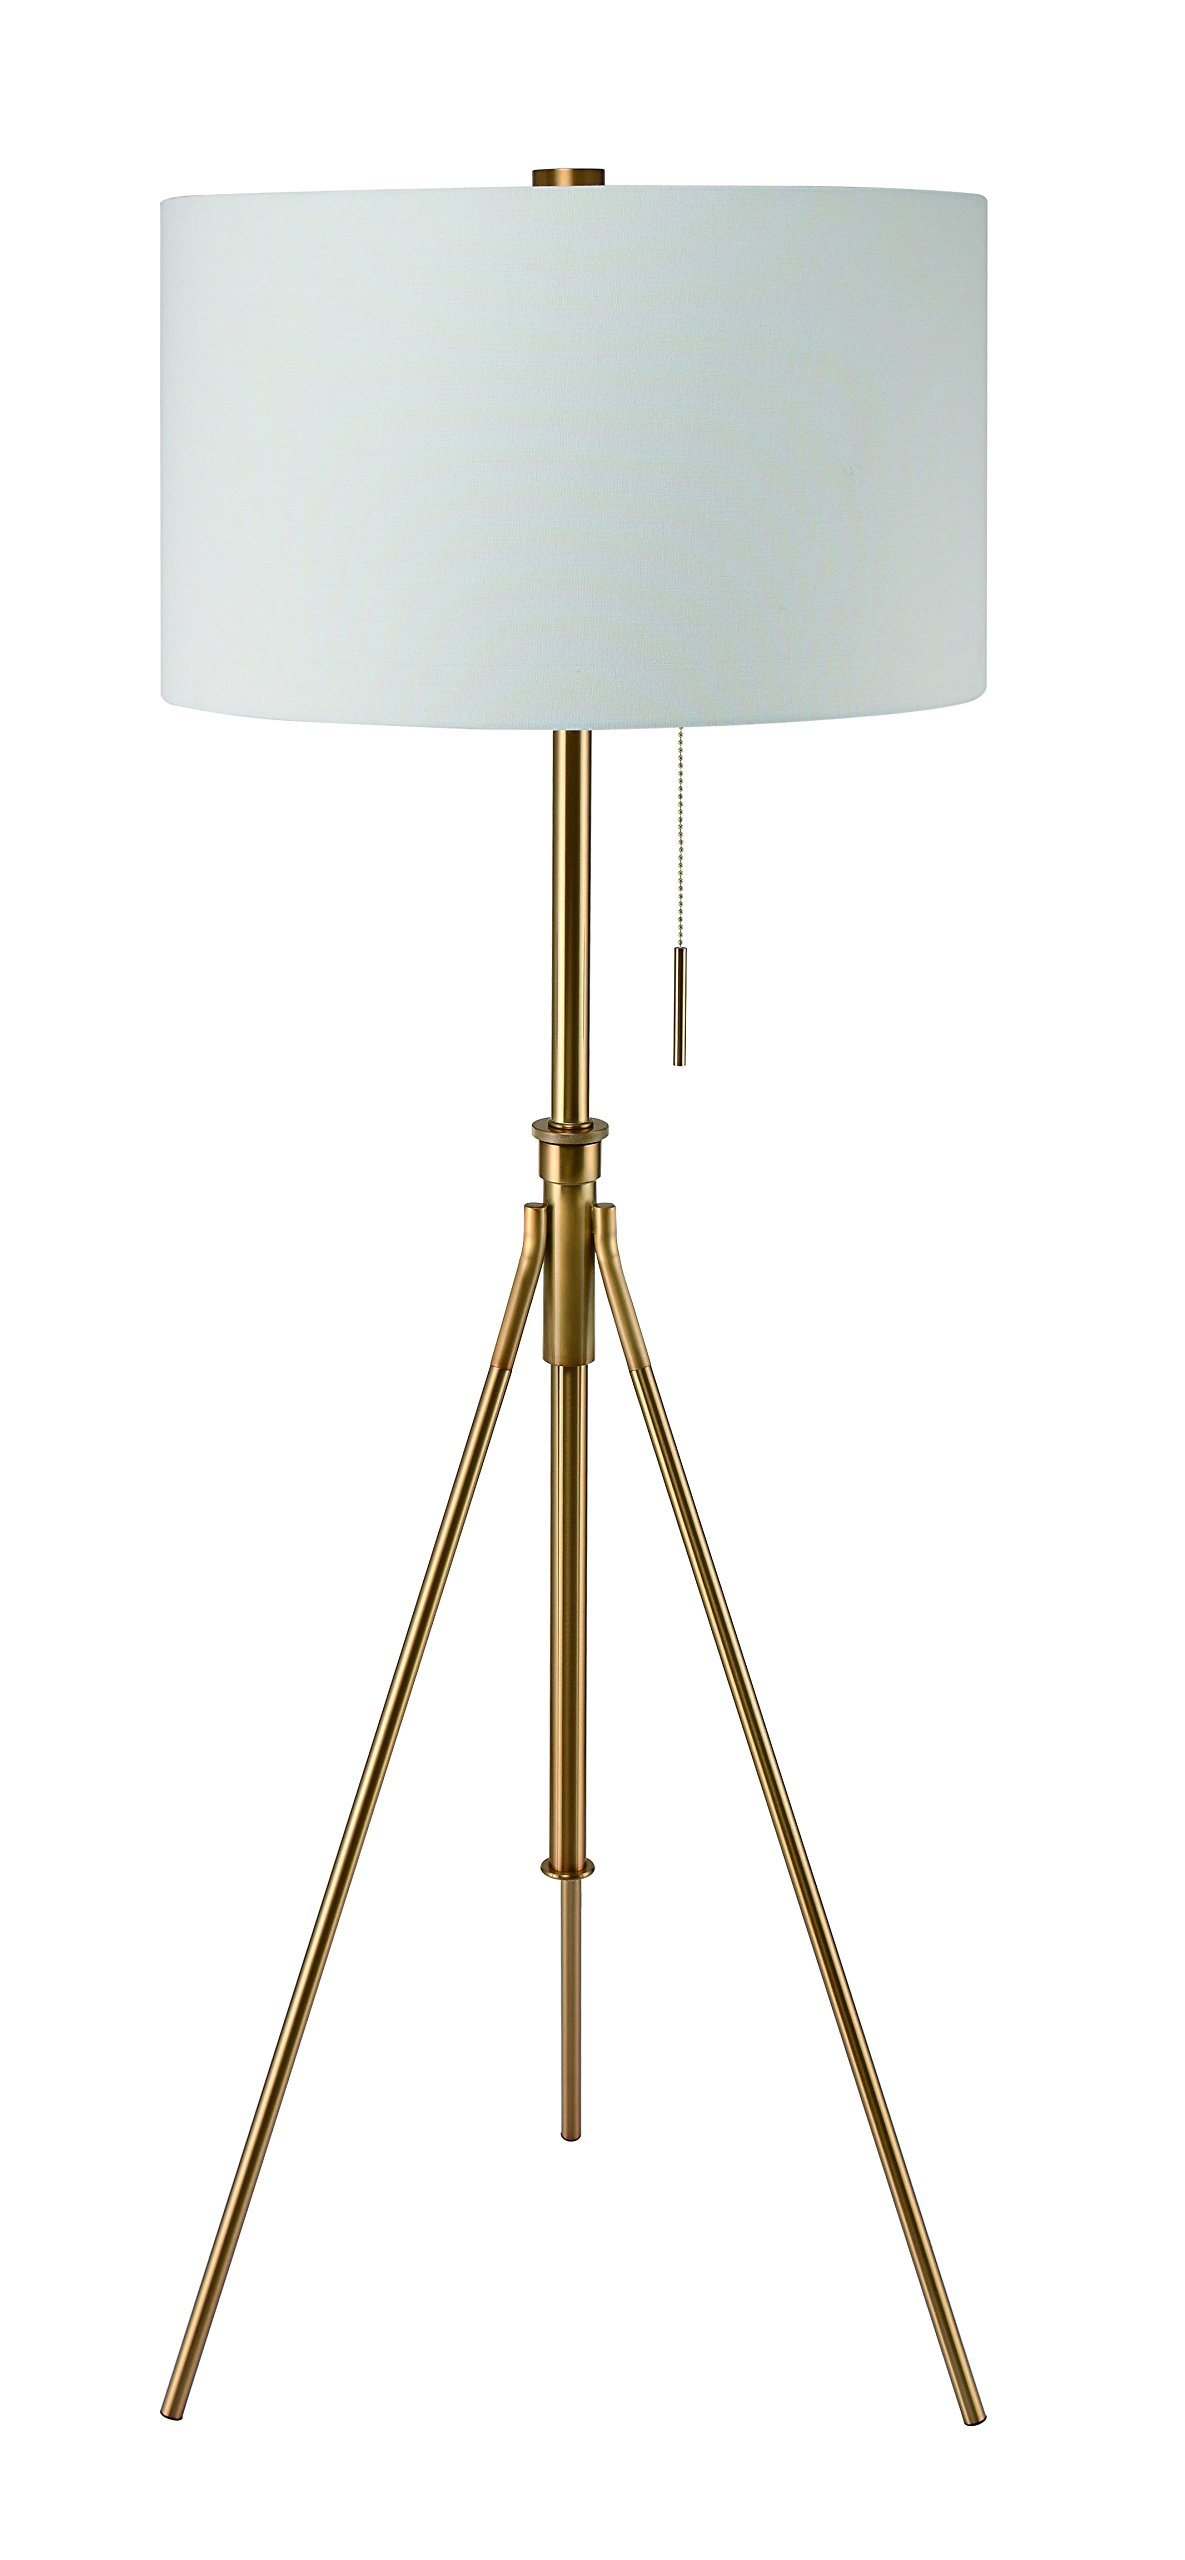 SH Lighting 31171f-SG Tall Tripod Adjustable Floor Lamp, Gold - Size: 20 x 20 x 71 inches lamp with huge drum shade X-large shade size 20 inch x 13 inch California title 20 compliant: energy efficient (LED light bulb compatible) - living-room-decor, living-room, floor-lamps - 71Er7YOMZqL -